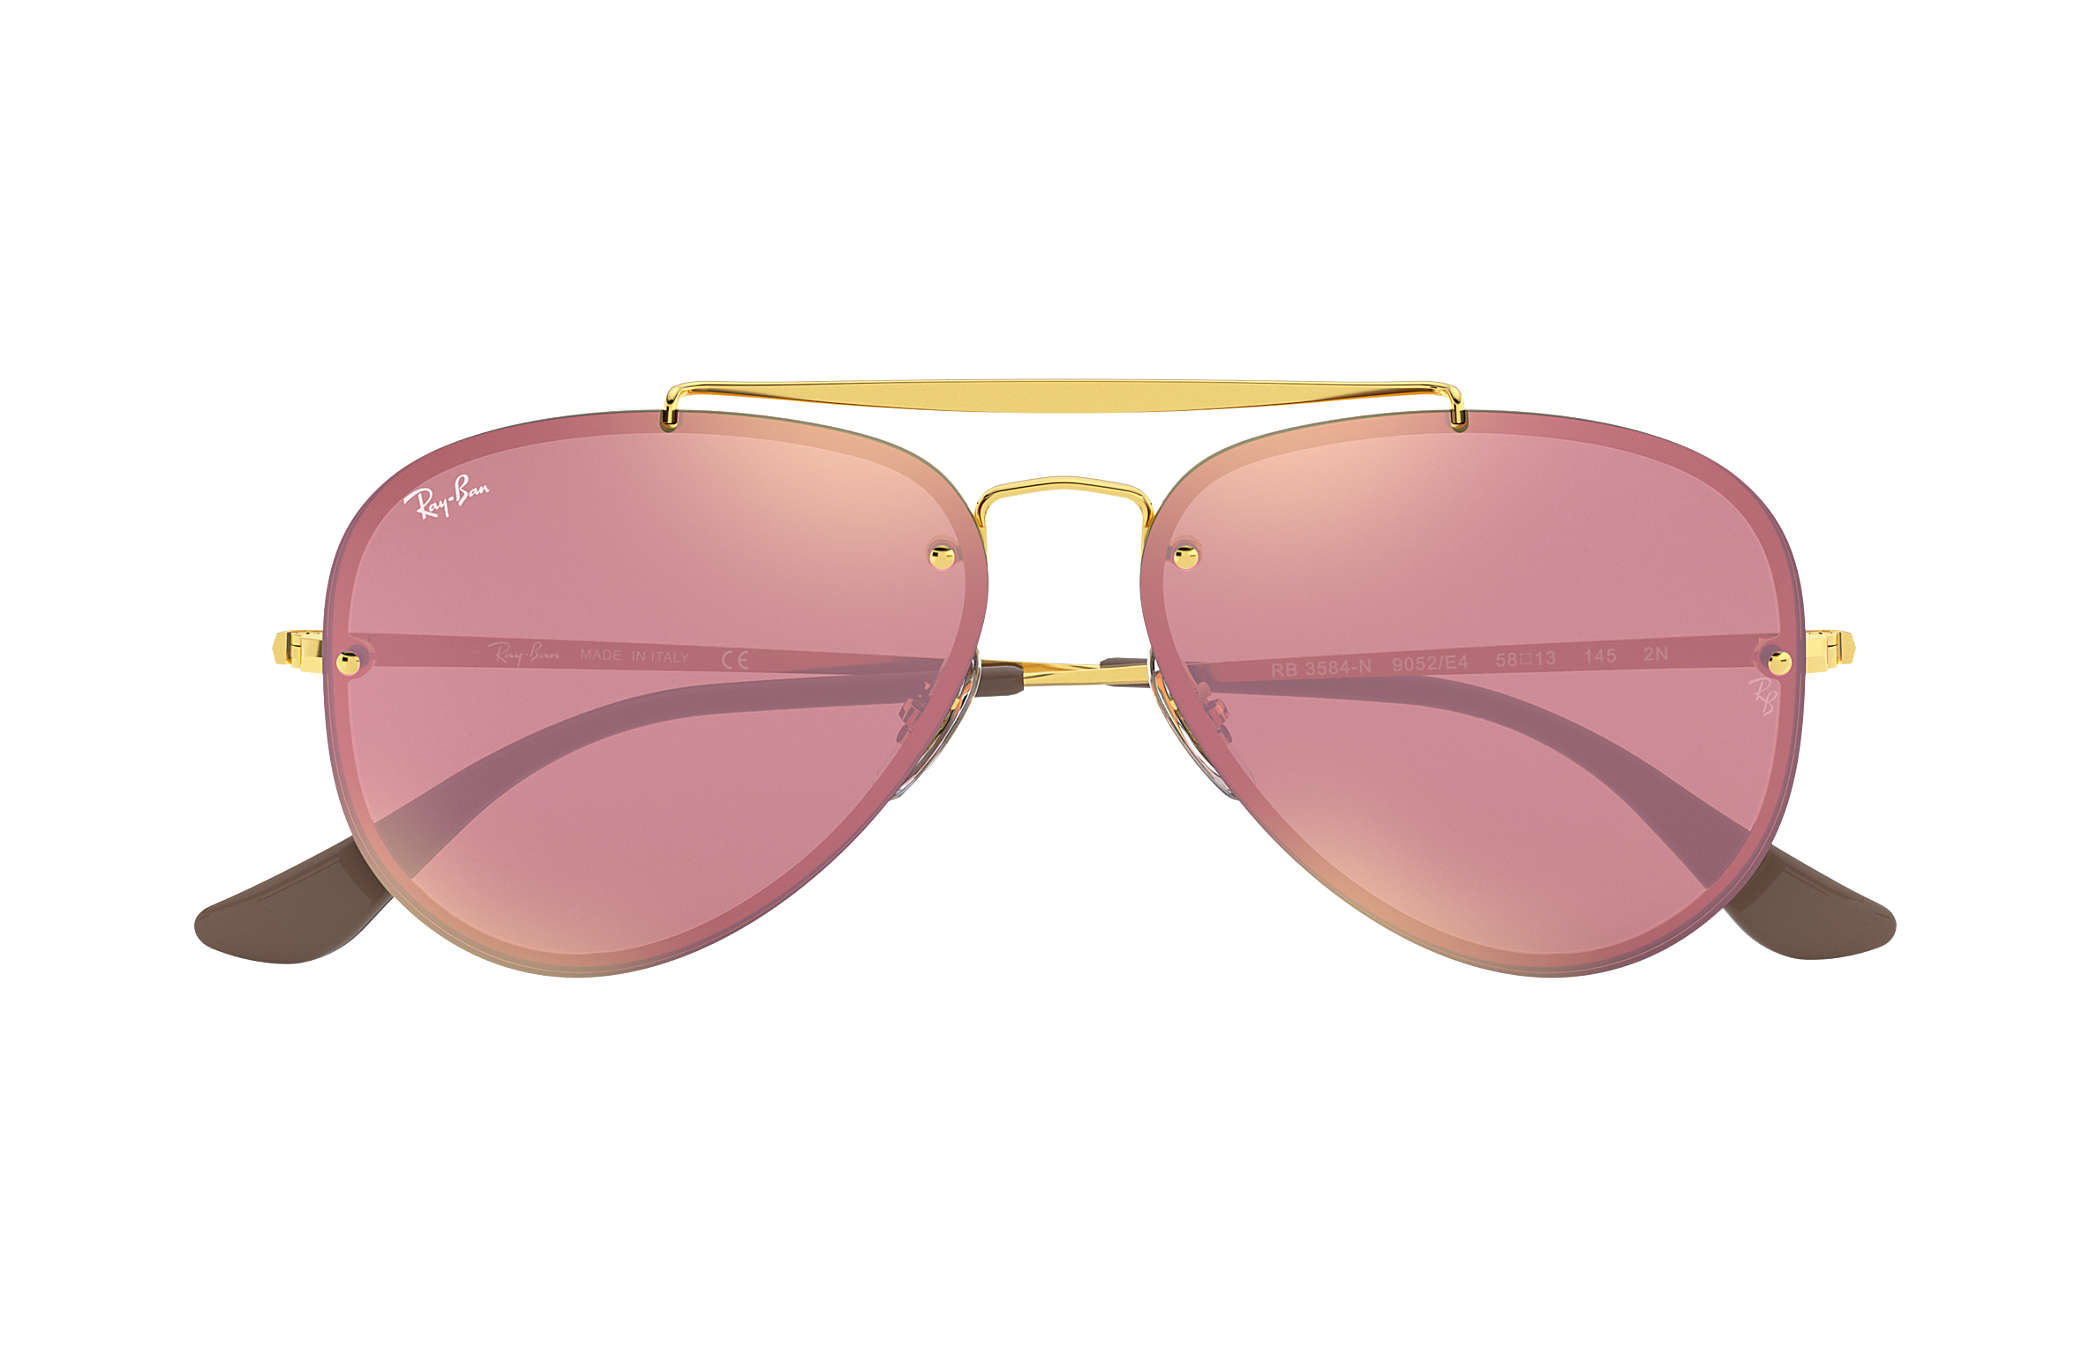 4f707ddf90c3b Ray-Ban Blaze Aviator RB3584N Gold - Steel - Pink Lenses ...